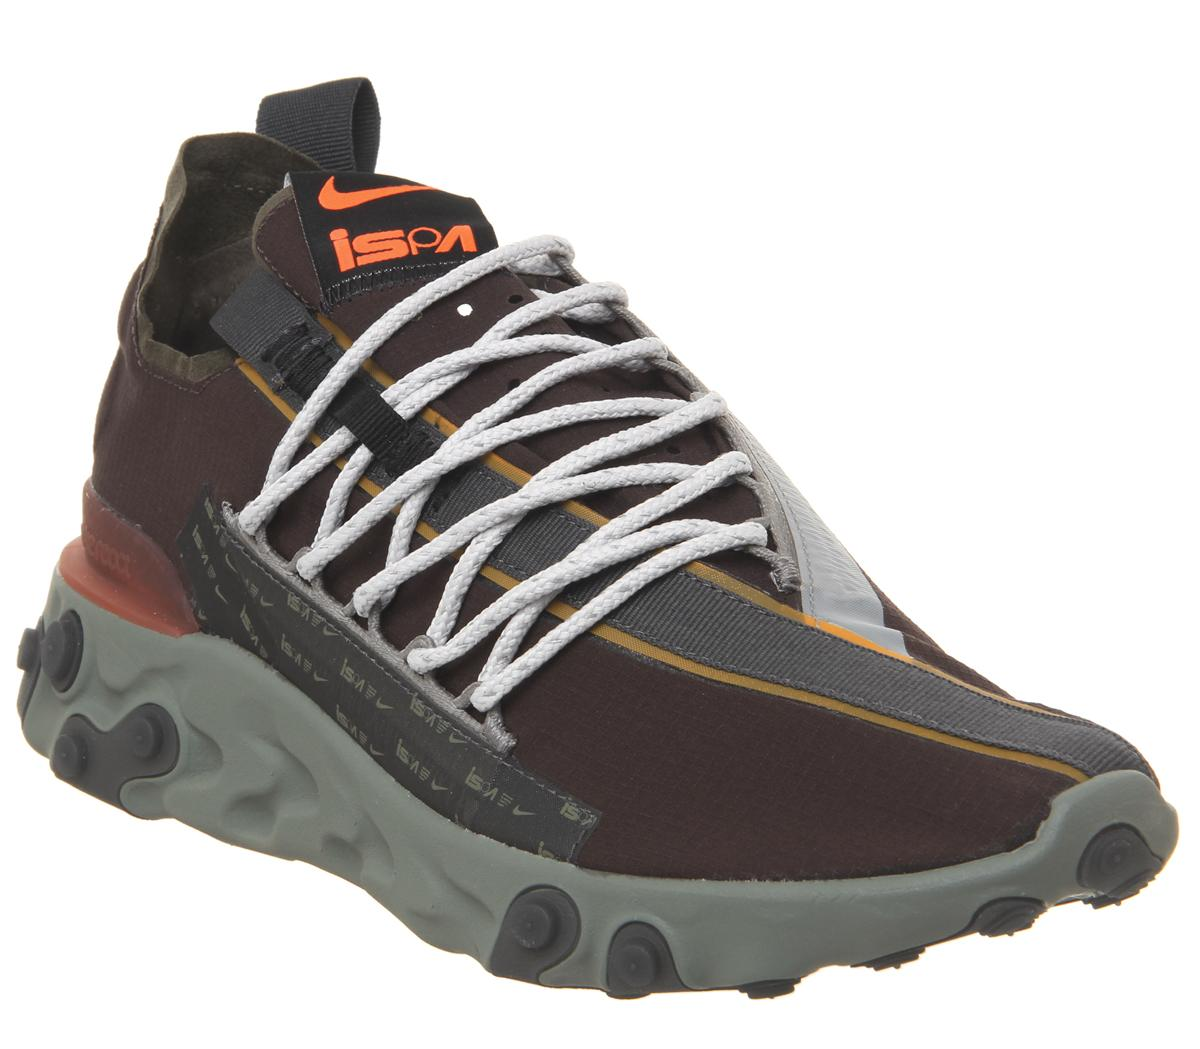 piano Disminución Plausible  Nike React Runner WR ISPA Trainers Velvet Brown Orange Dark Stucco Black -  His trainers